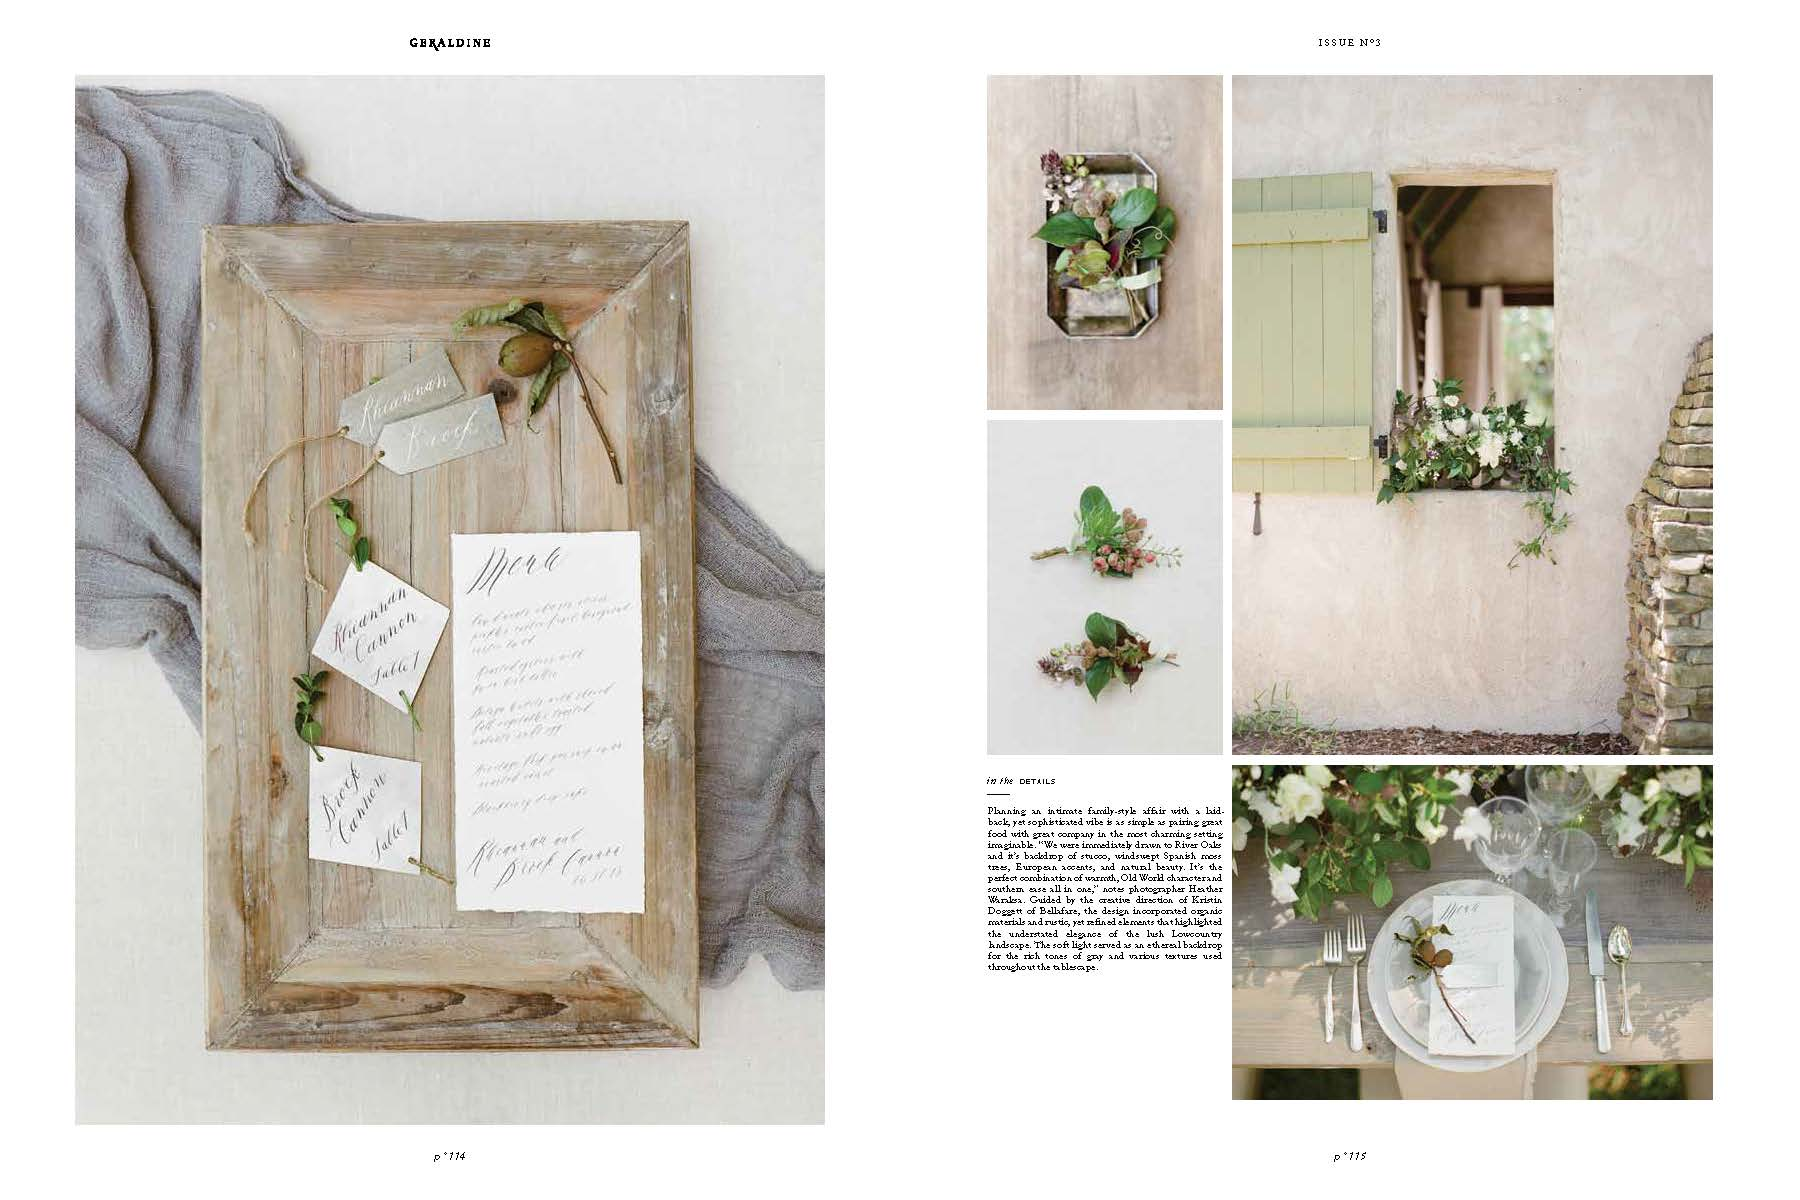 Pages from OldWorldCharm_GeraldineIssue03-page 3.jpg